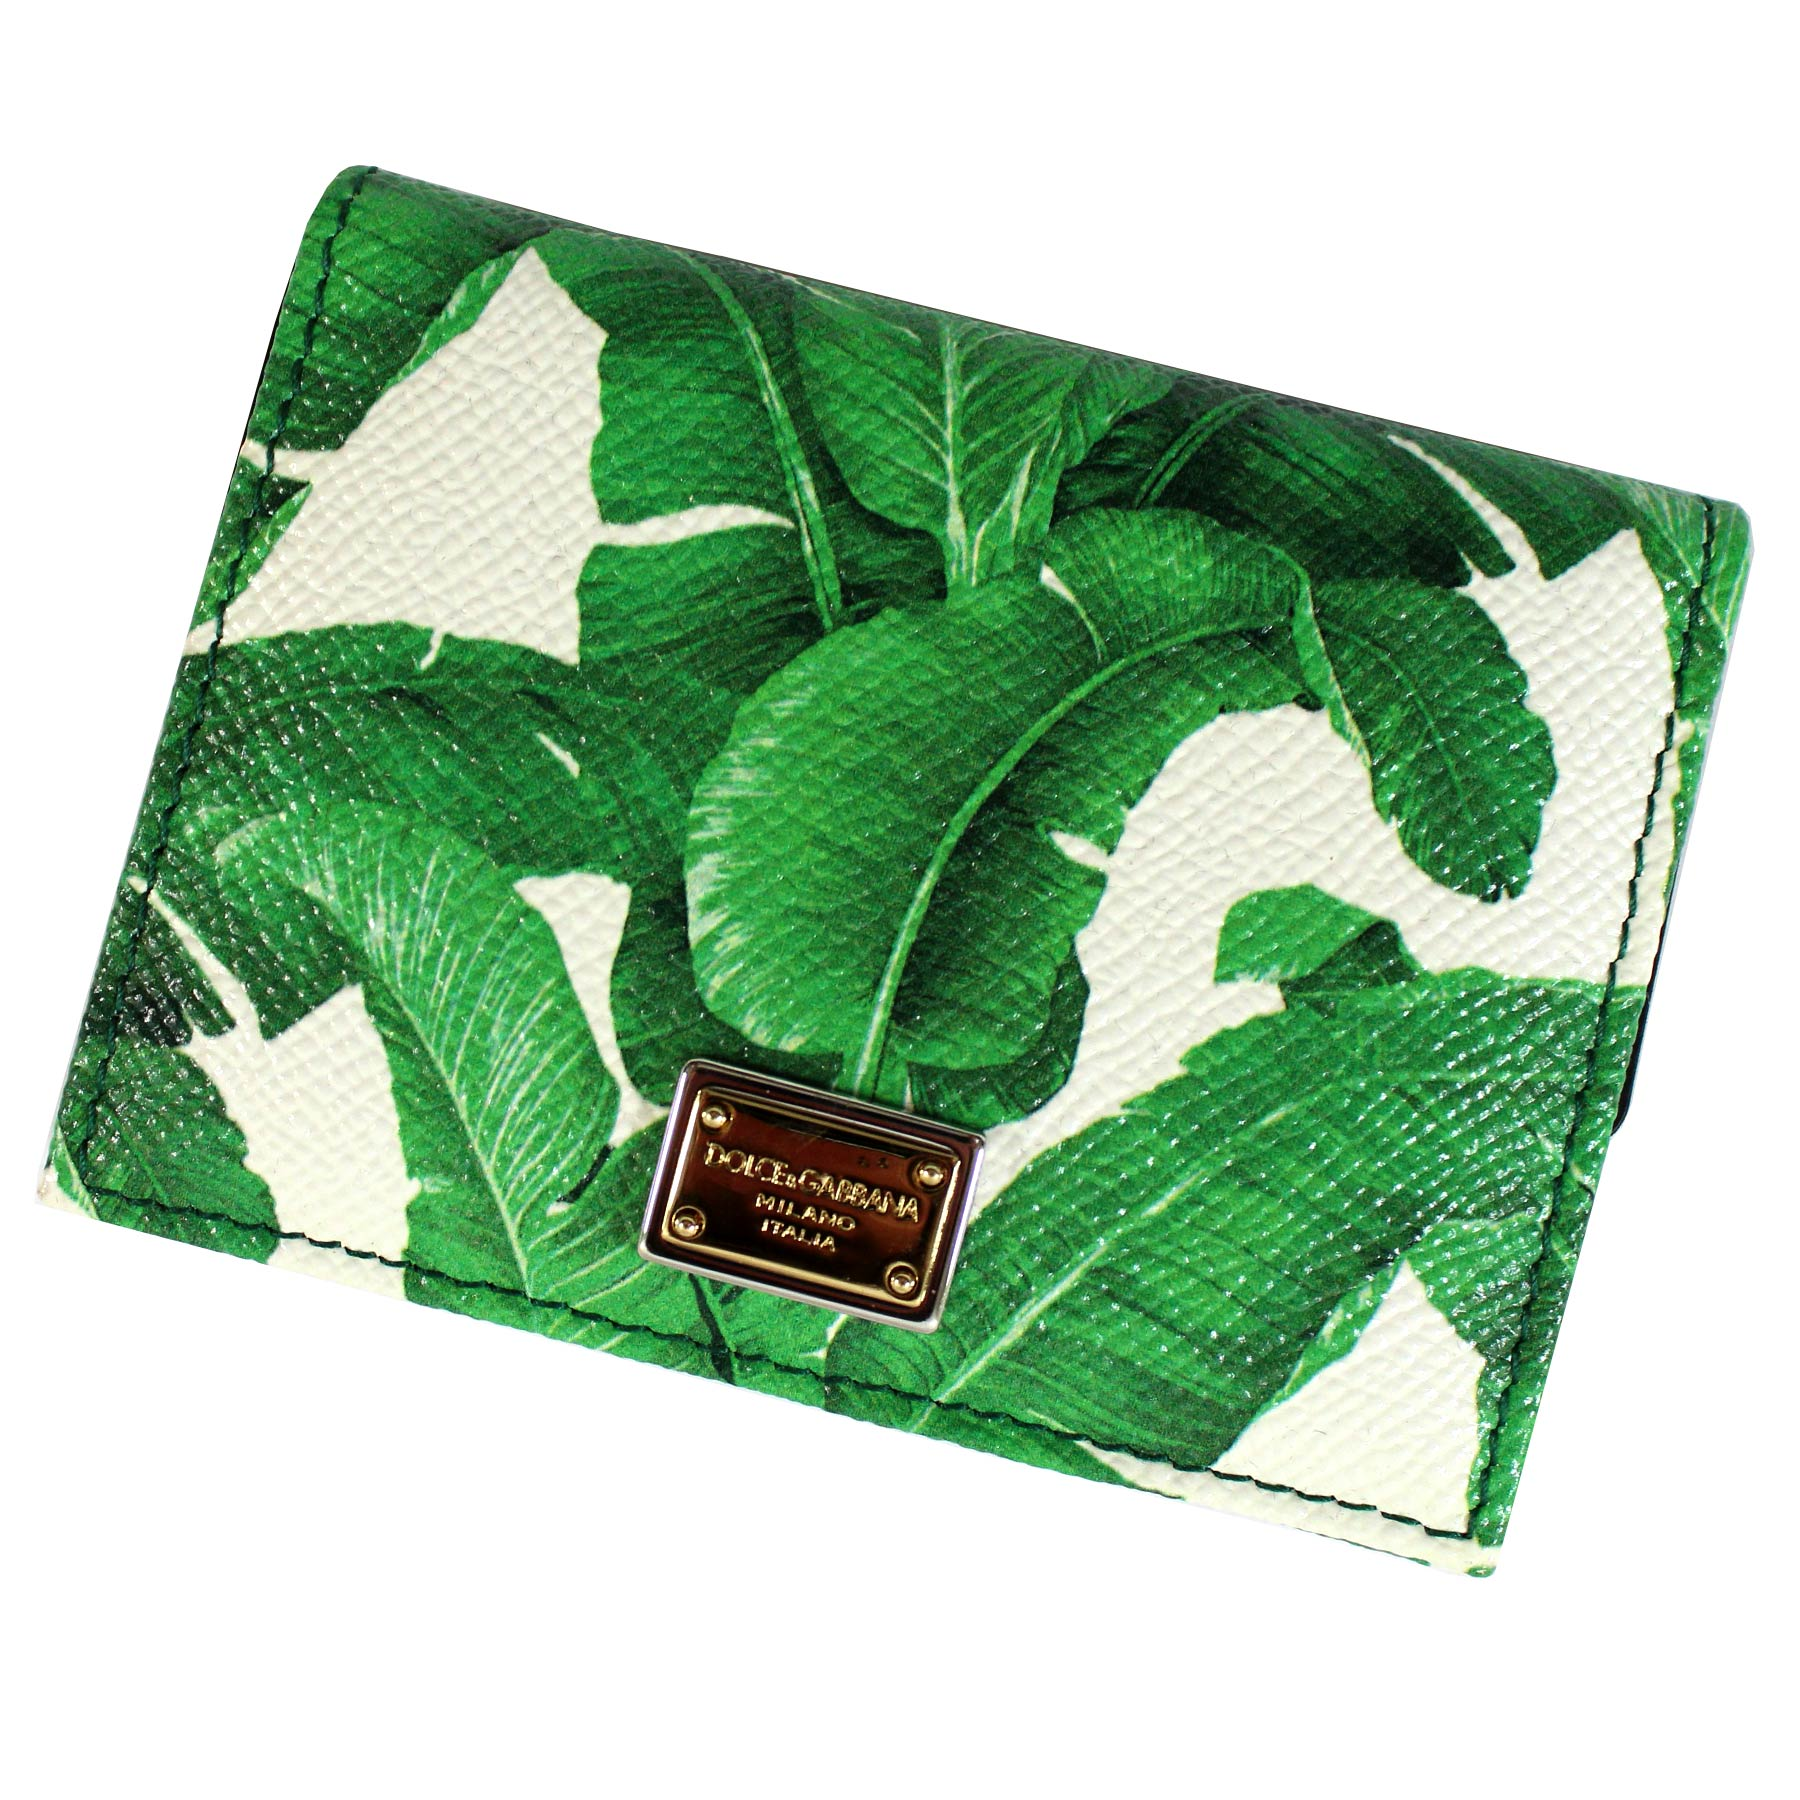 Dolce & Gabbana Wallet White Green